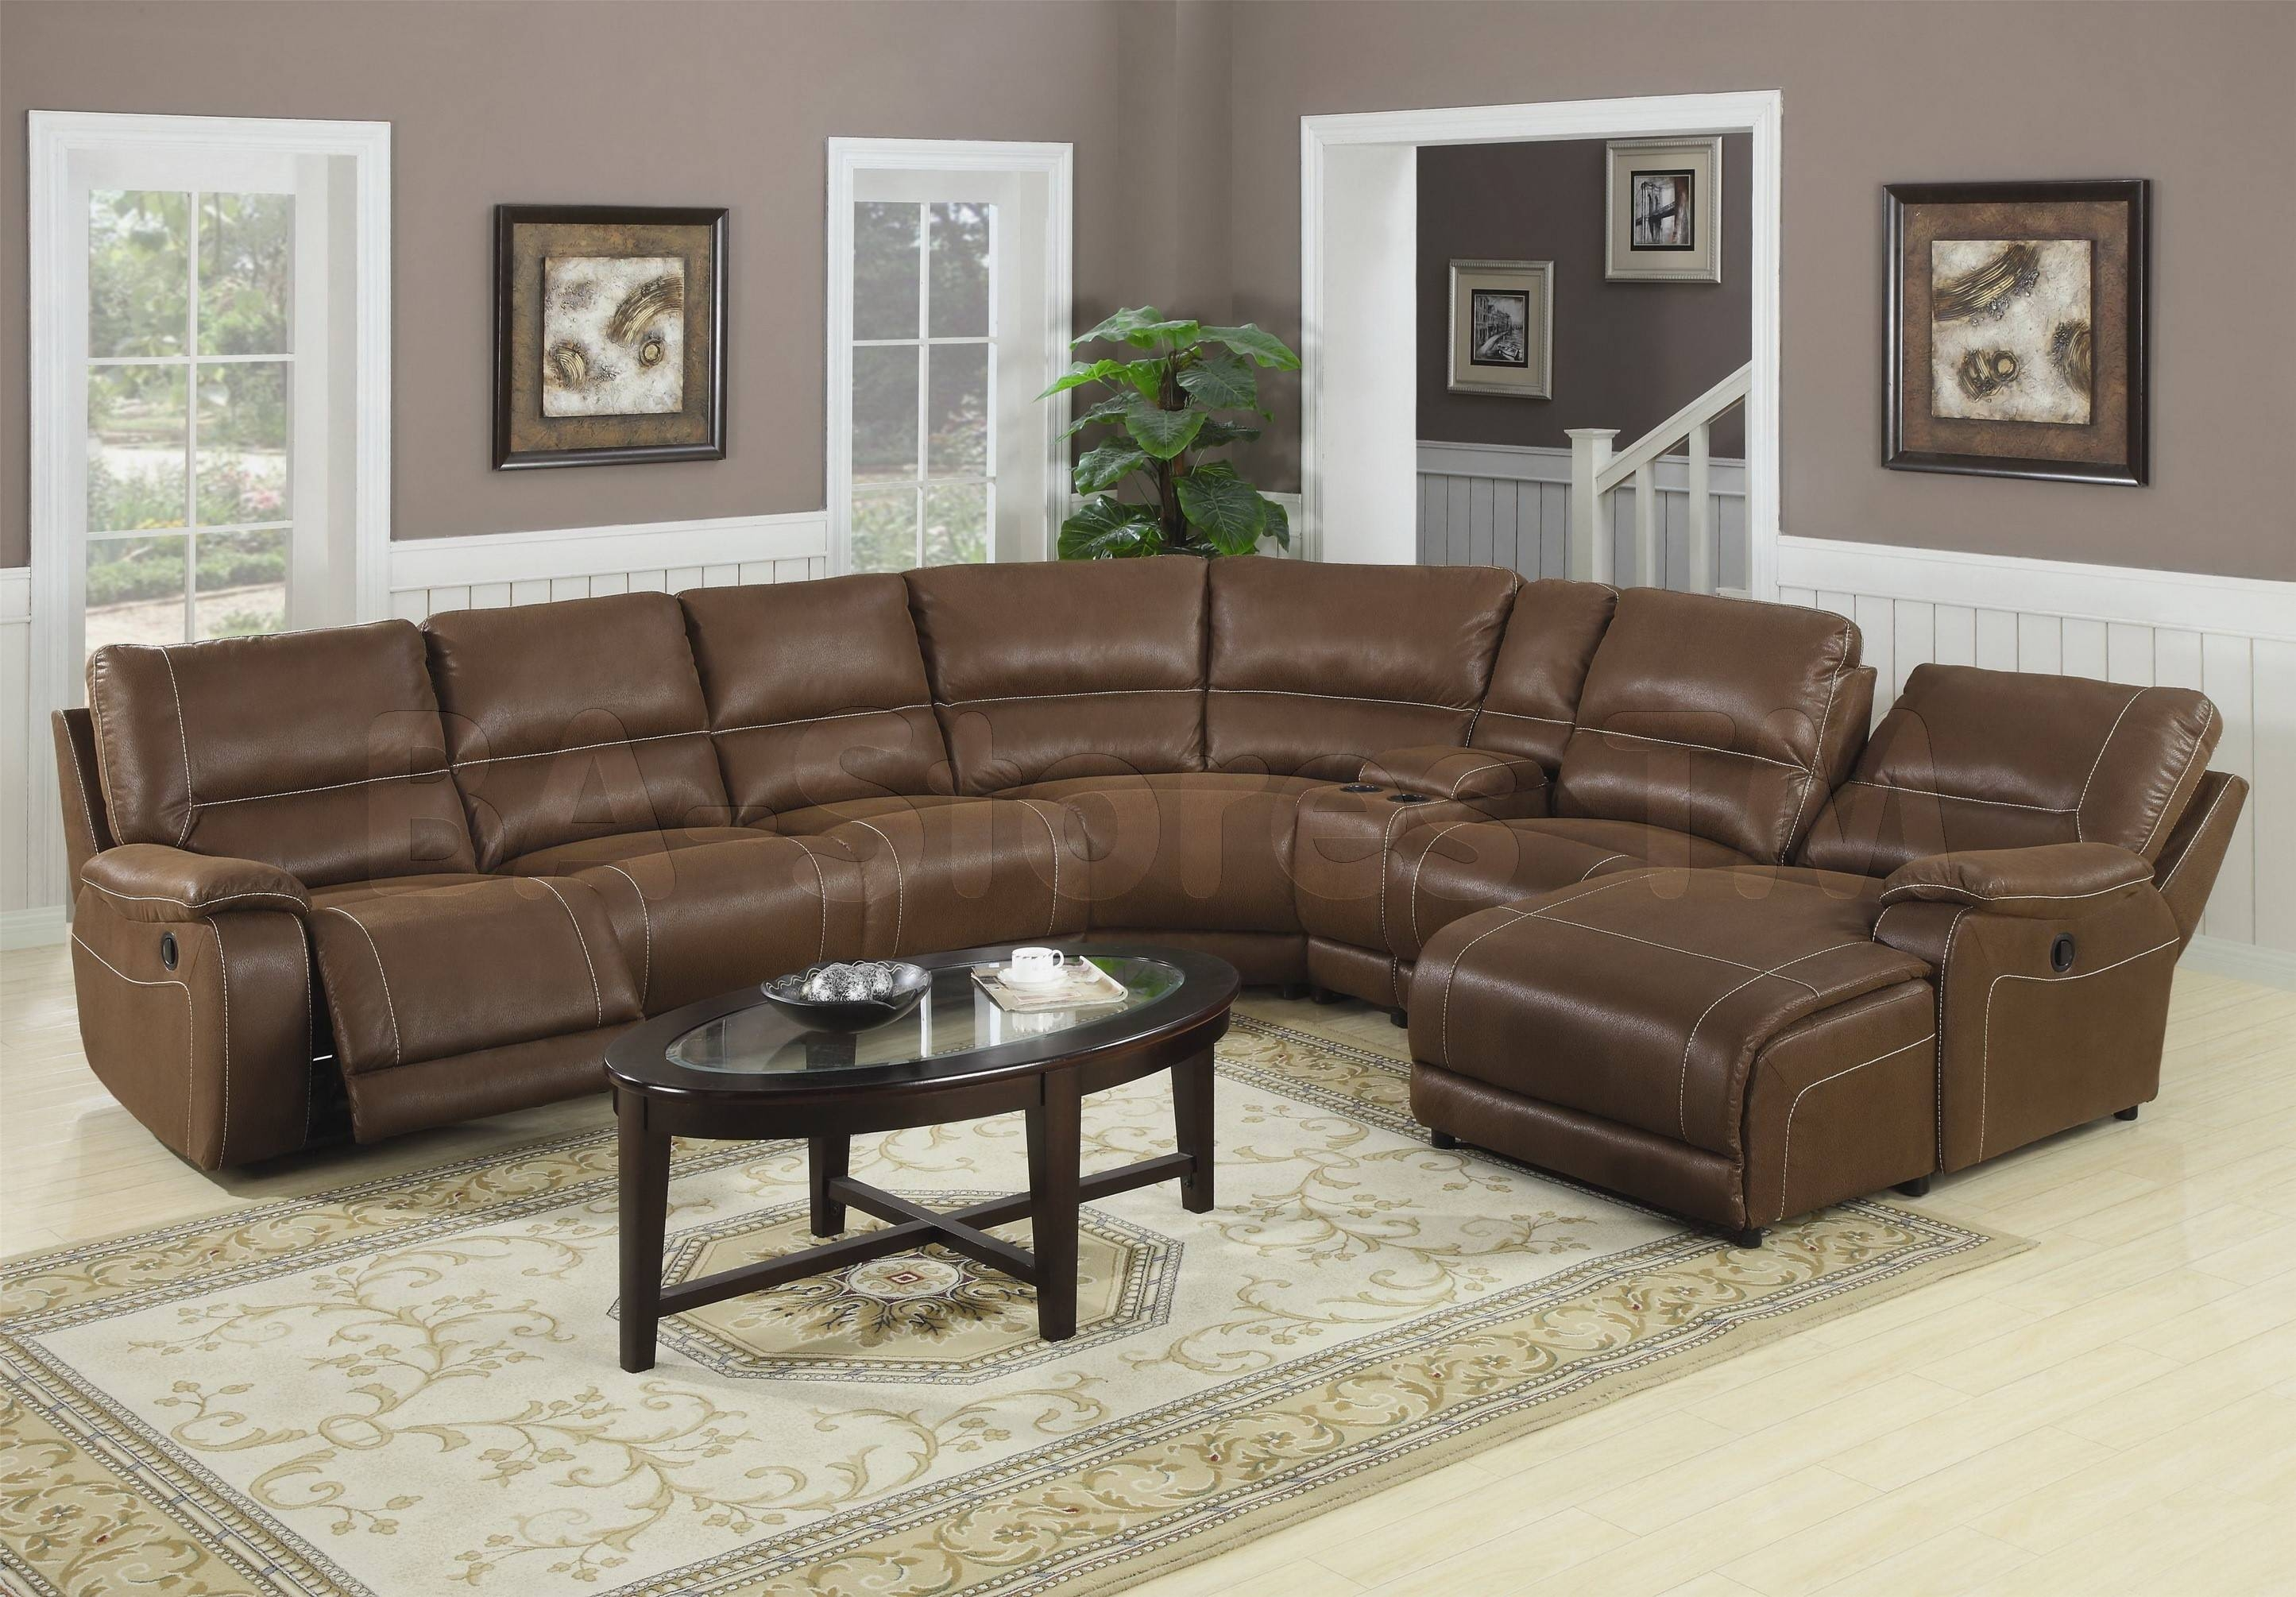 Used Sectional Sofa Sale - Hotelsbacau in Cincinnati Sectional Sofas (Image 15 of 15)